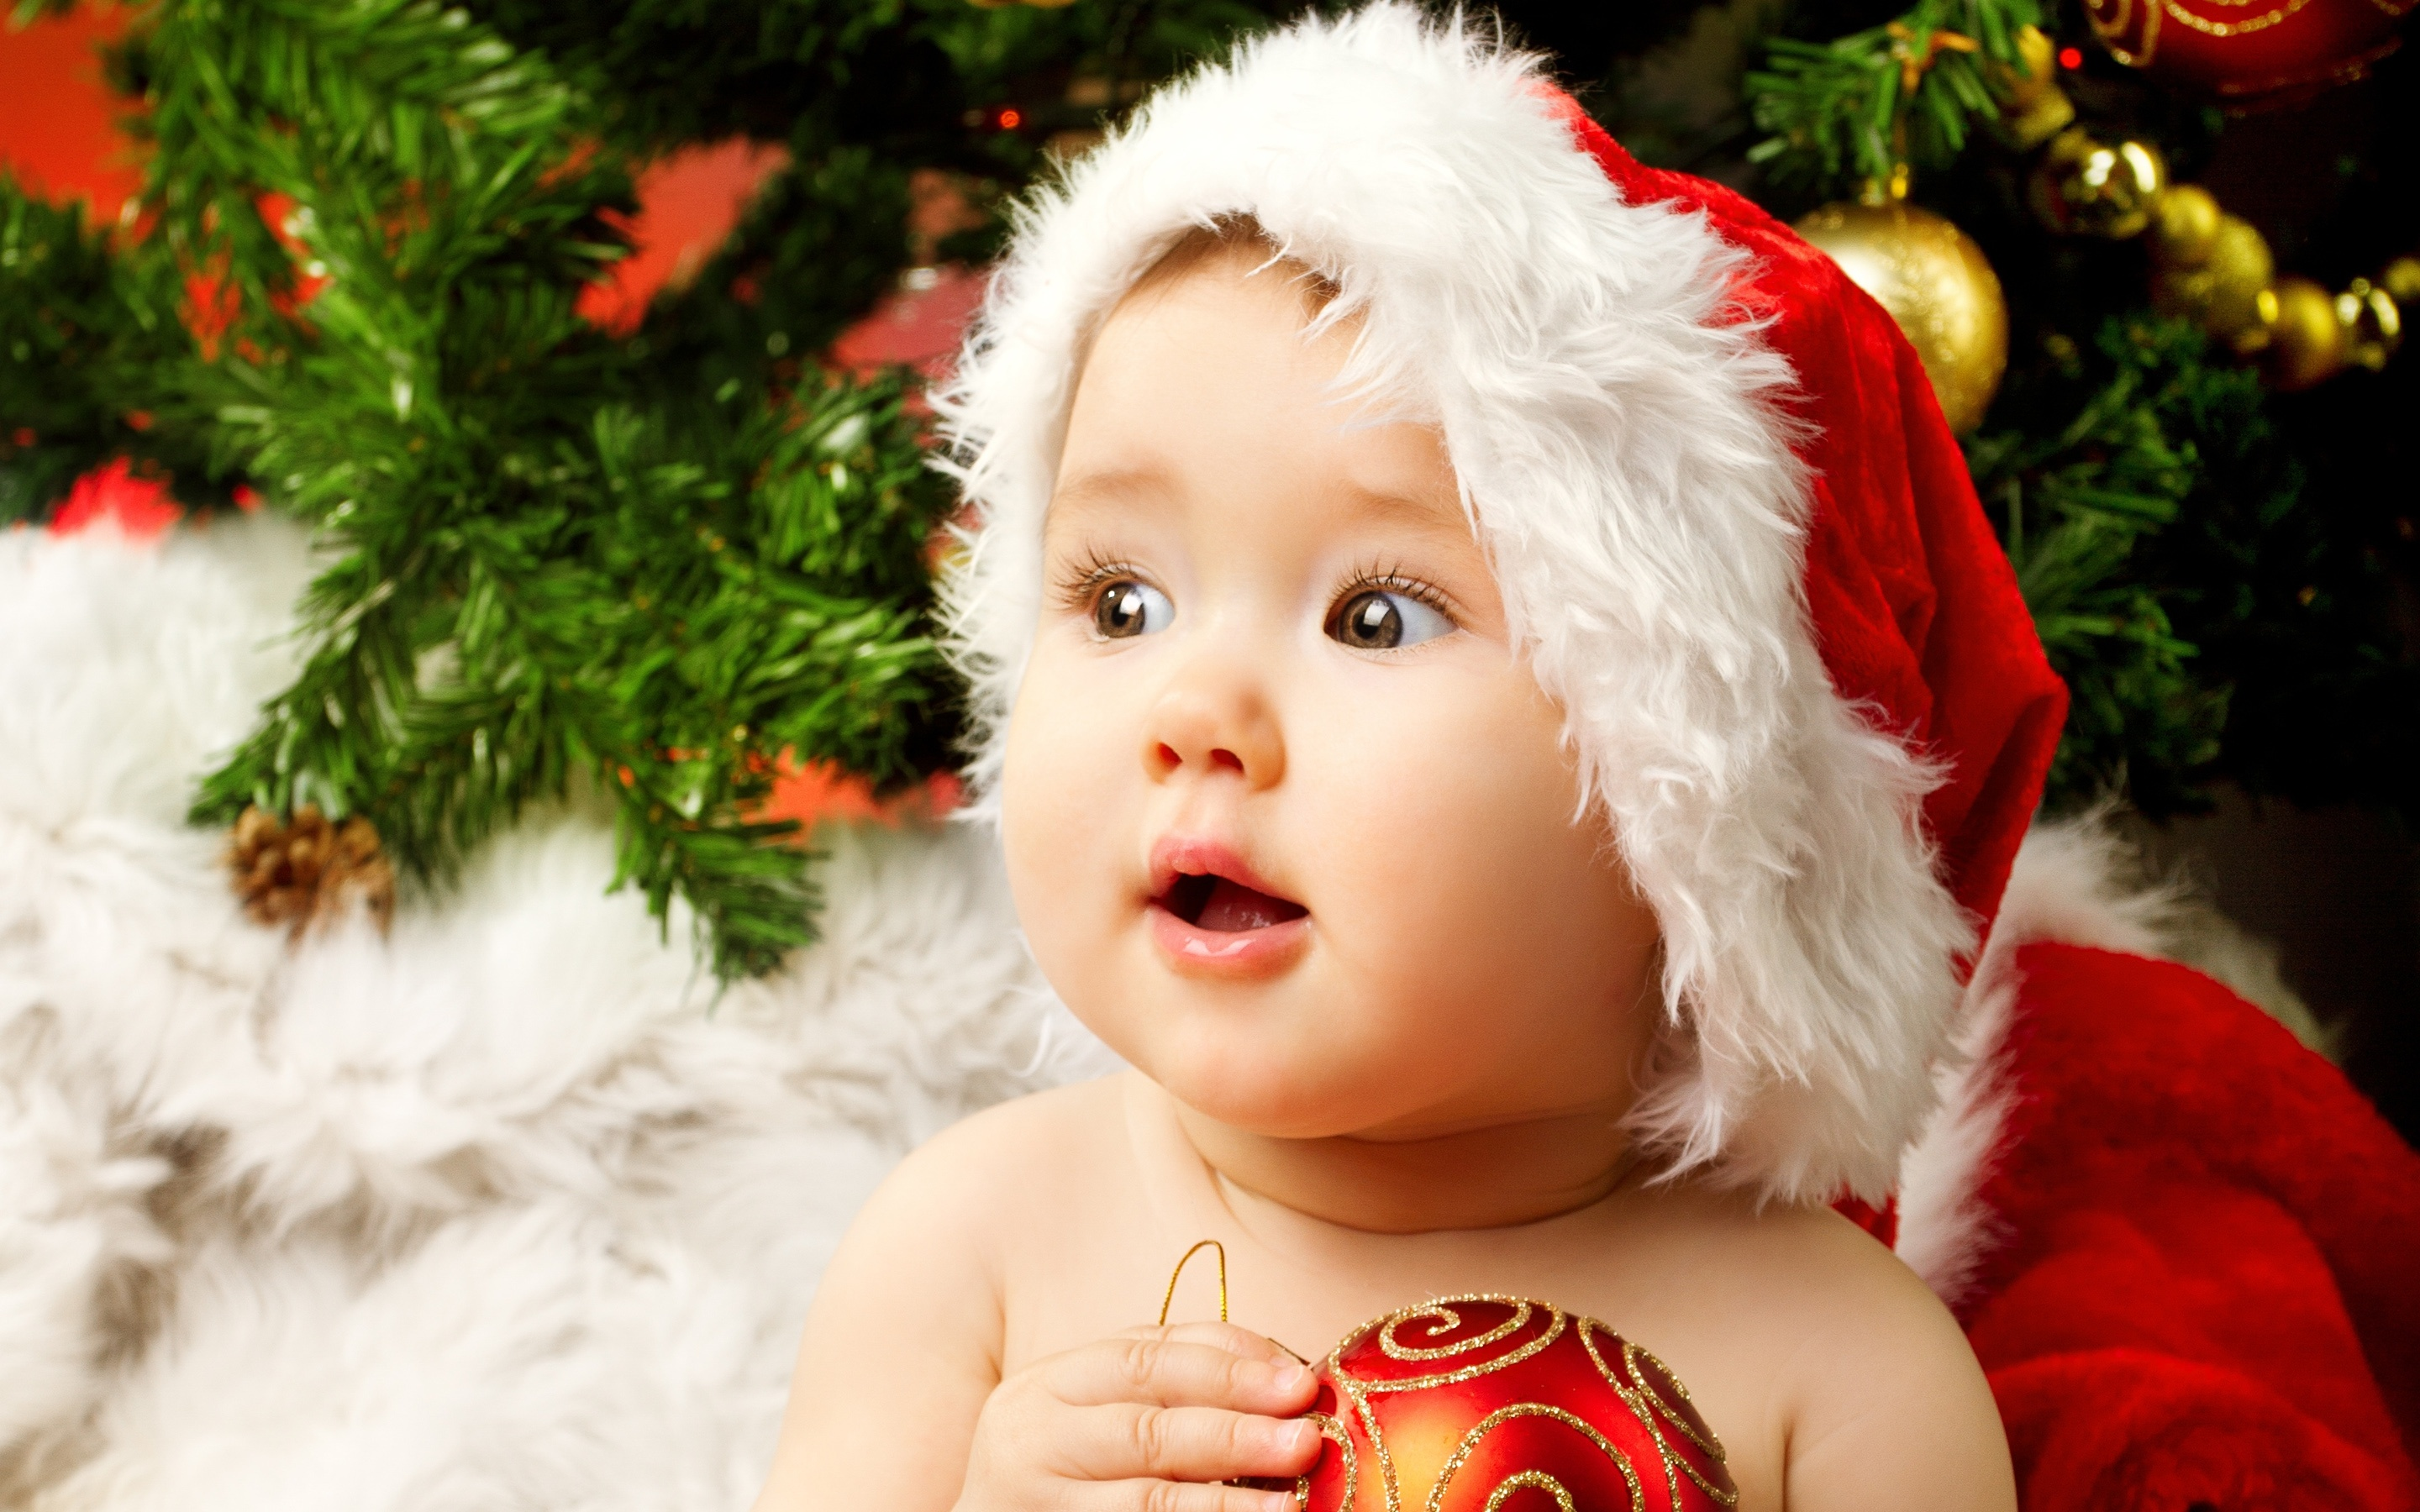 Cute adorable baby santa wallpapers in jpg format for free download - Sweet baby girl wallpaper pictures ...